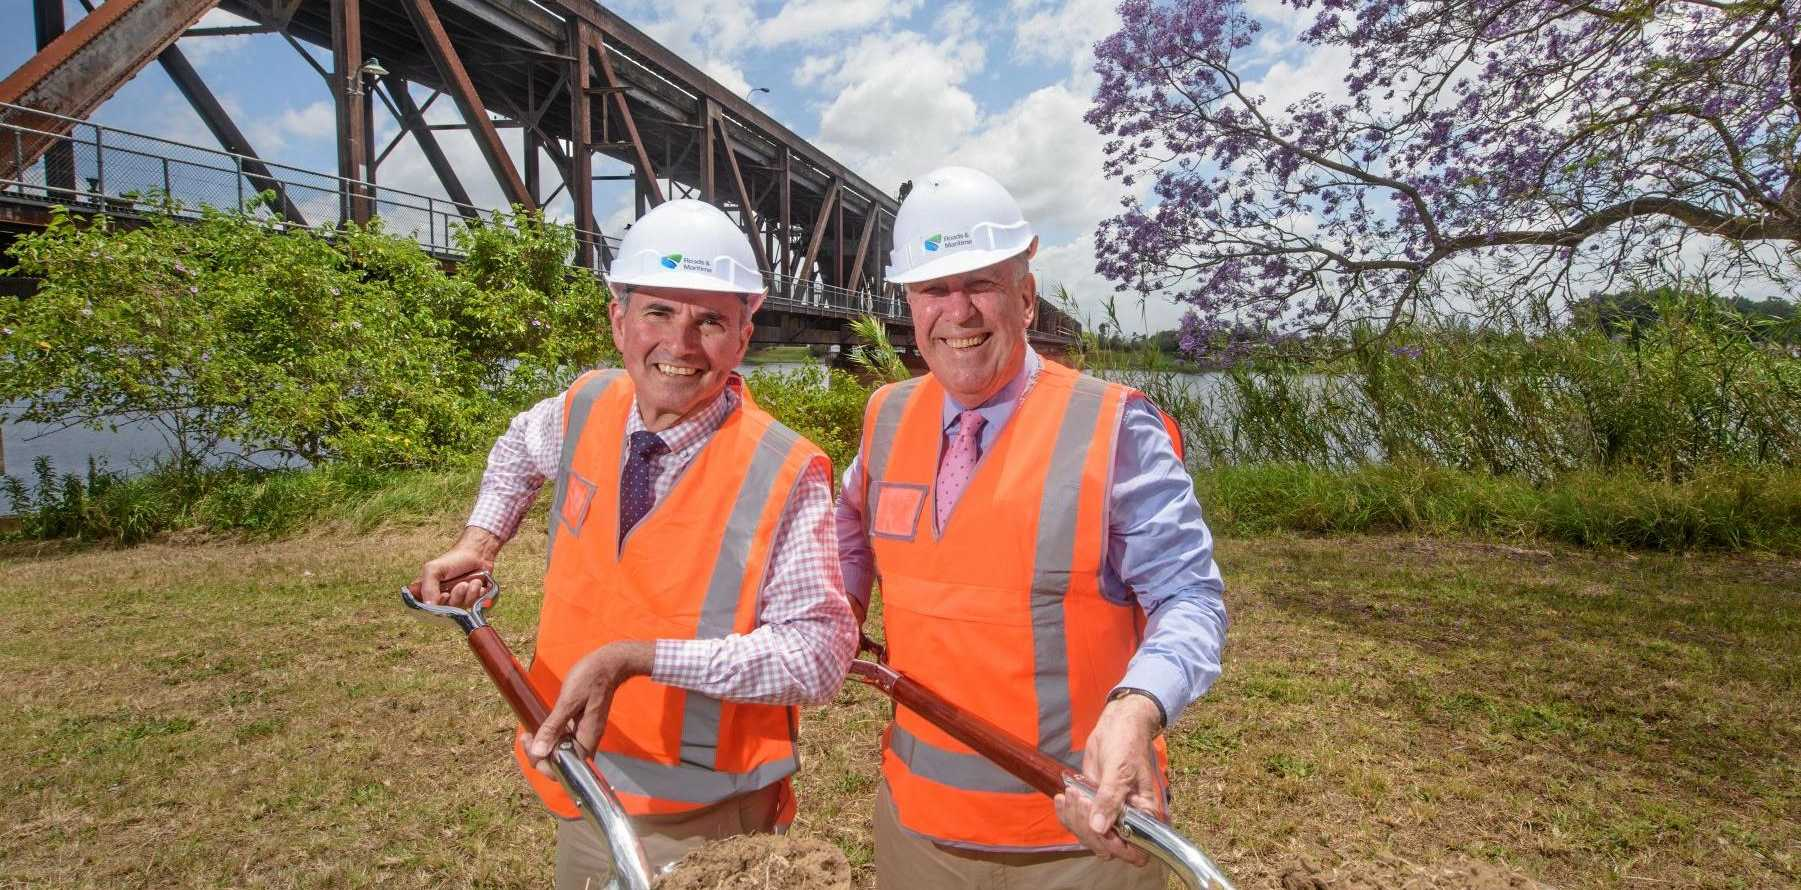 Member for Clarence Chris Gulaptis and Minister for Roads Duncan Gay turn the first sod for the construction process of the new Grafton bridge.